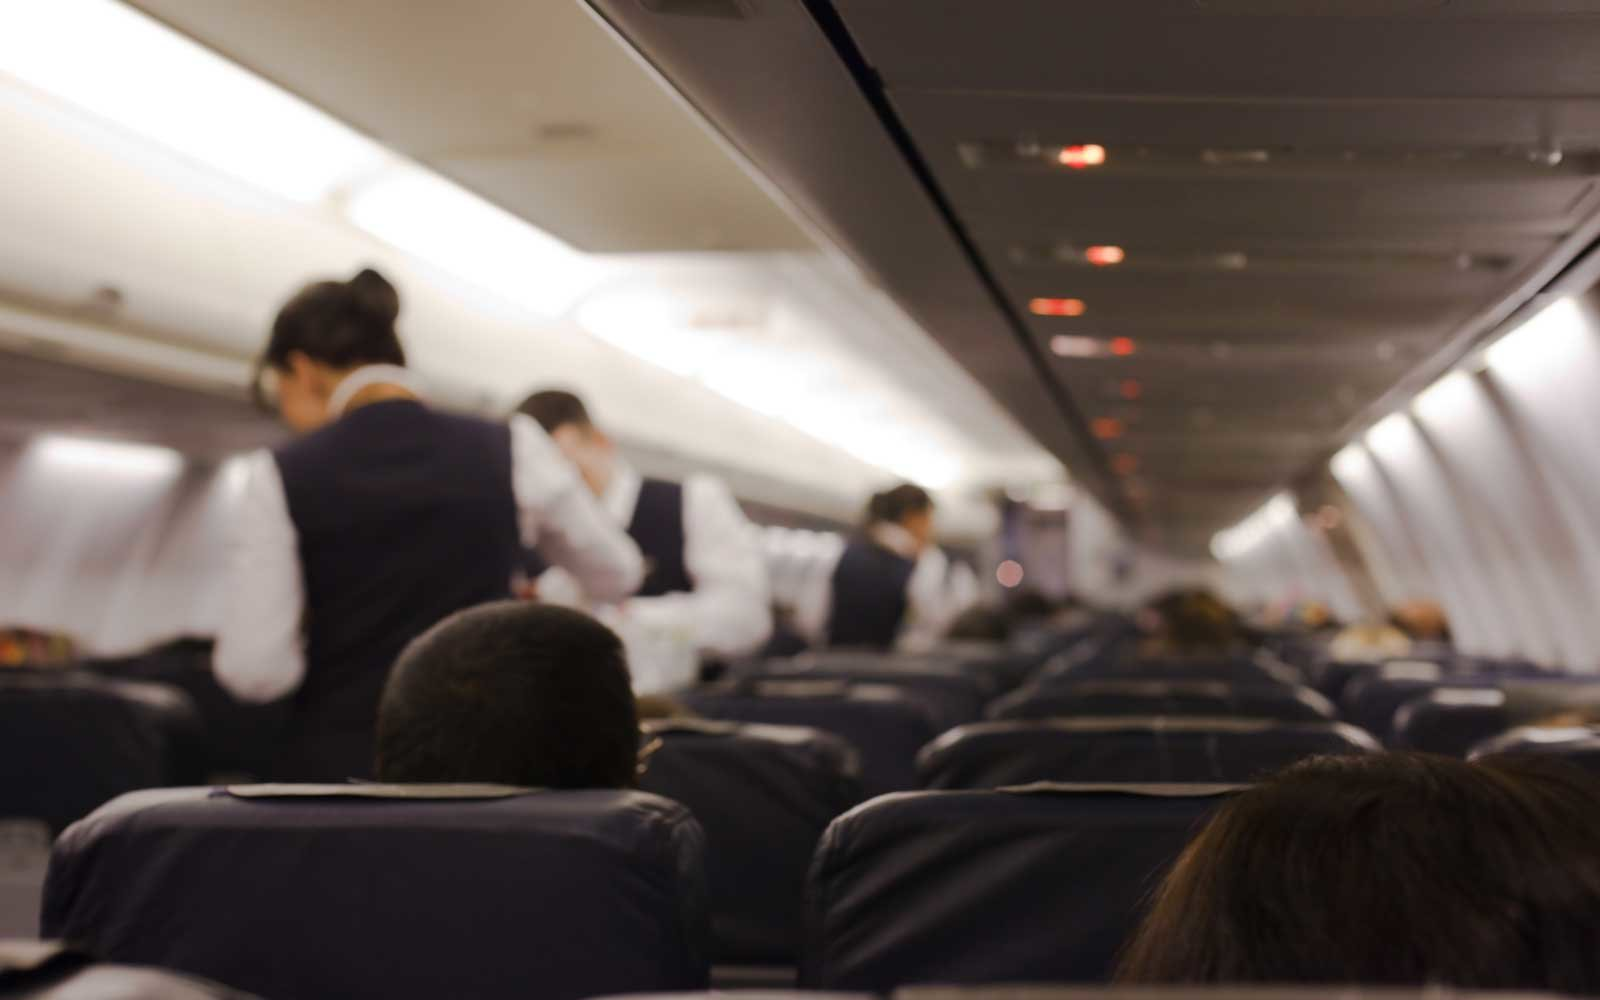 Flight Attendants Look Out for Human Trafficking